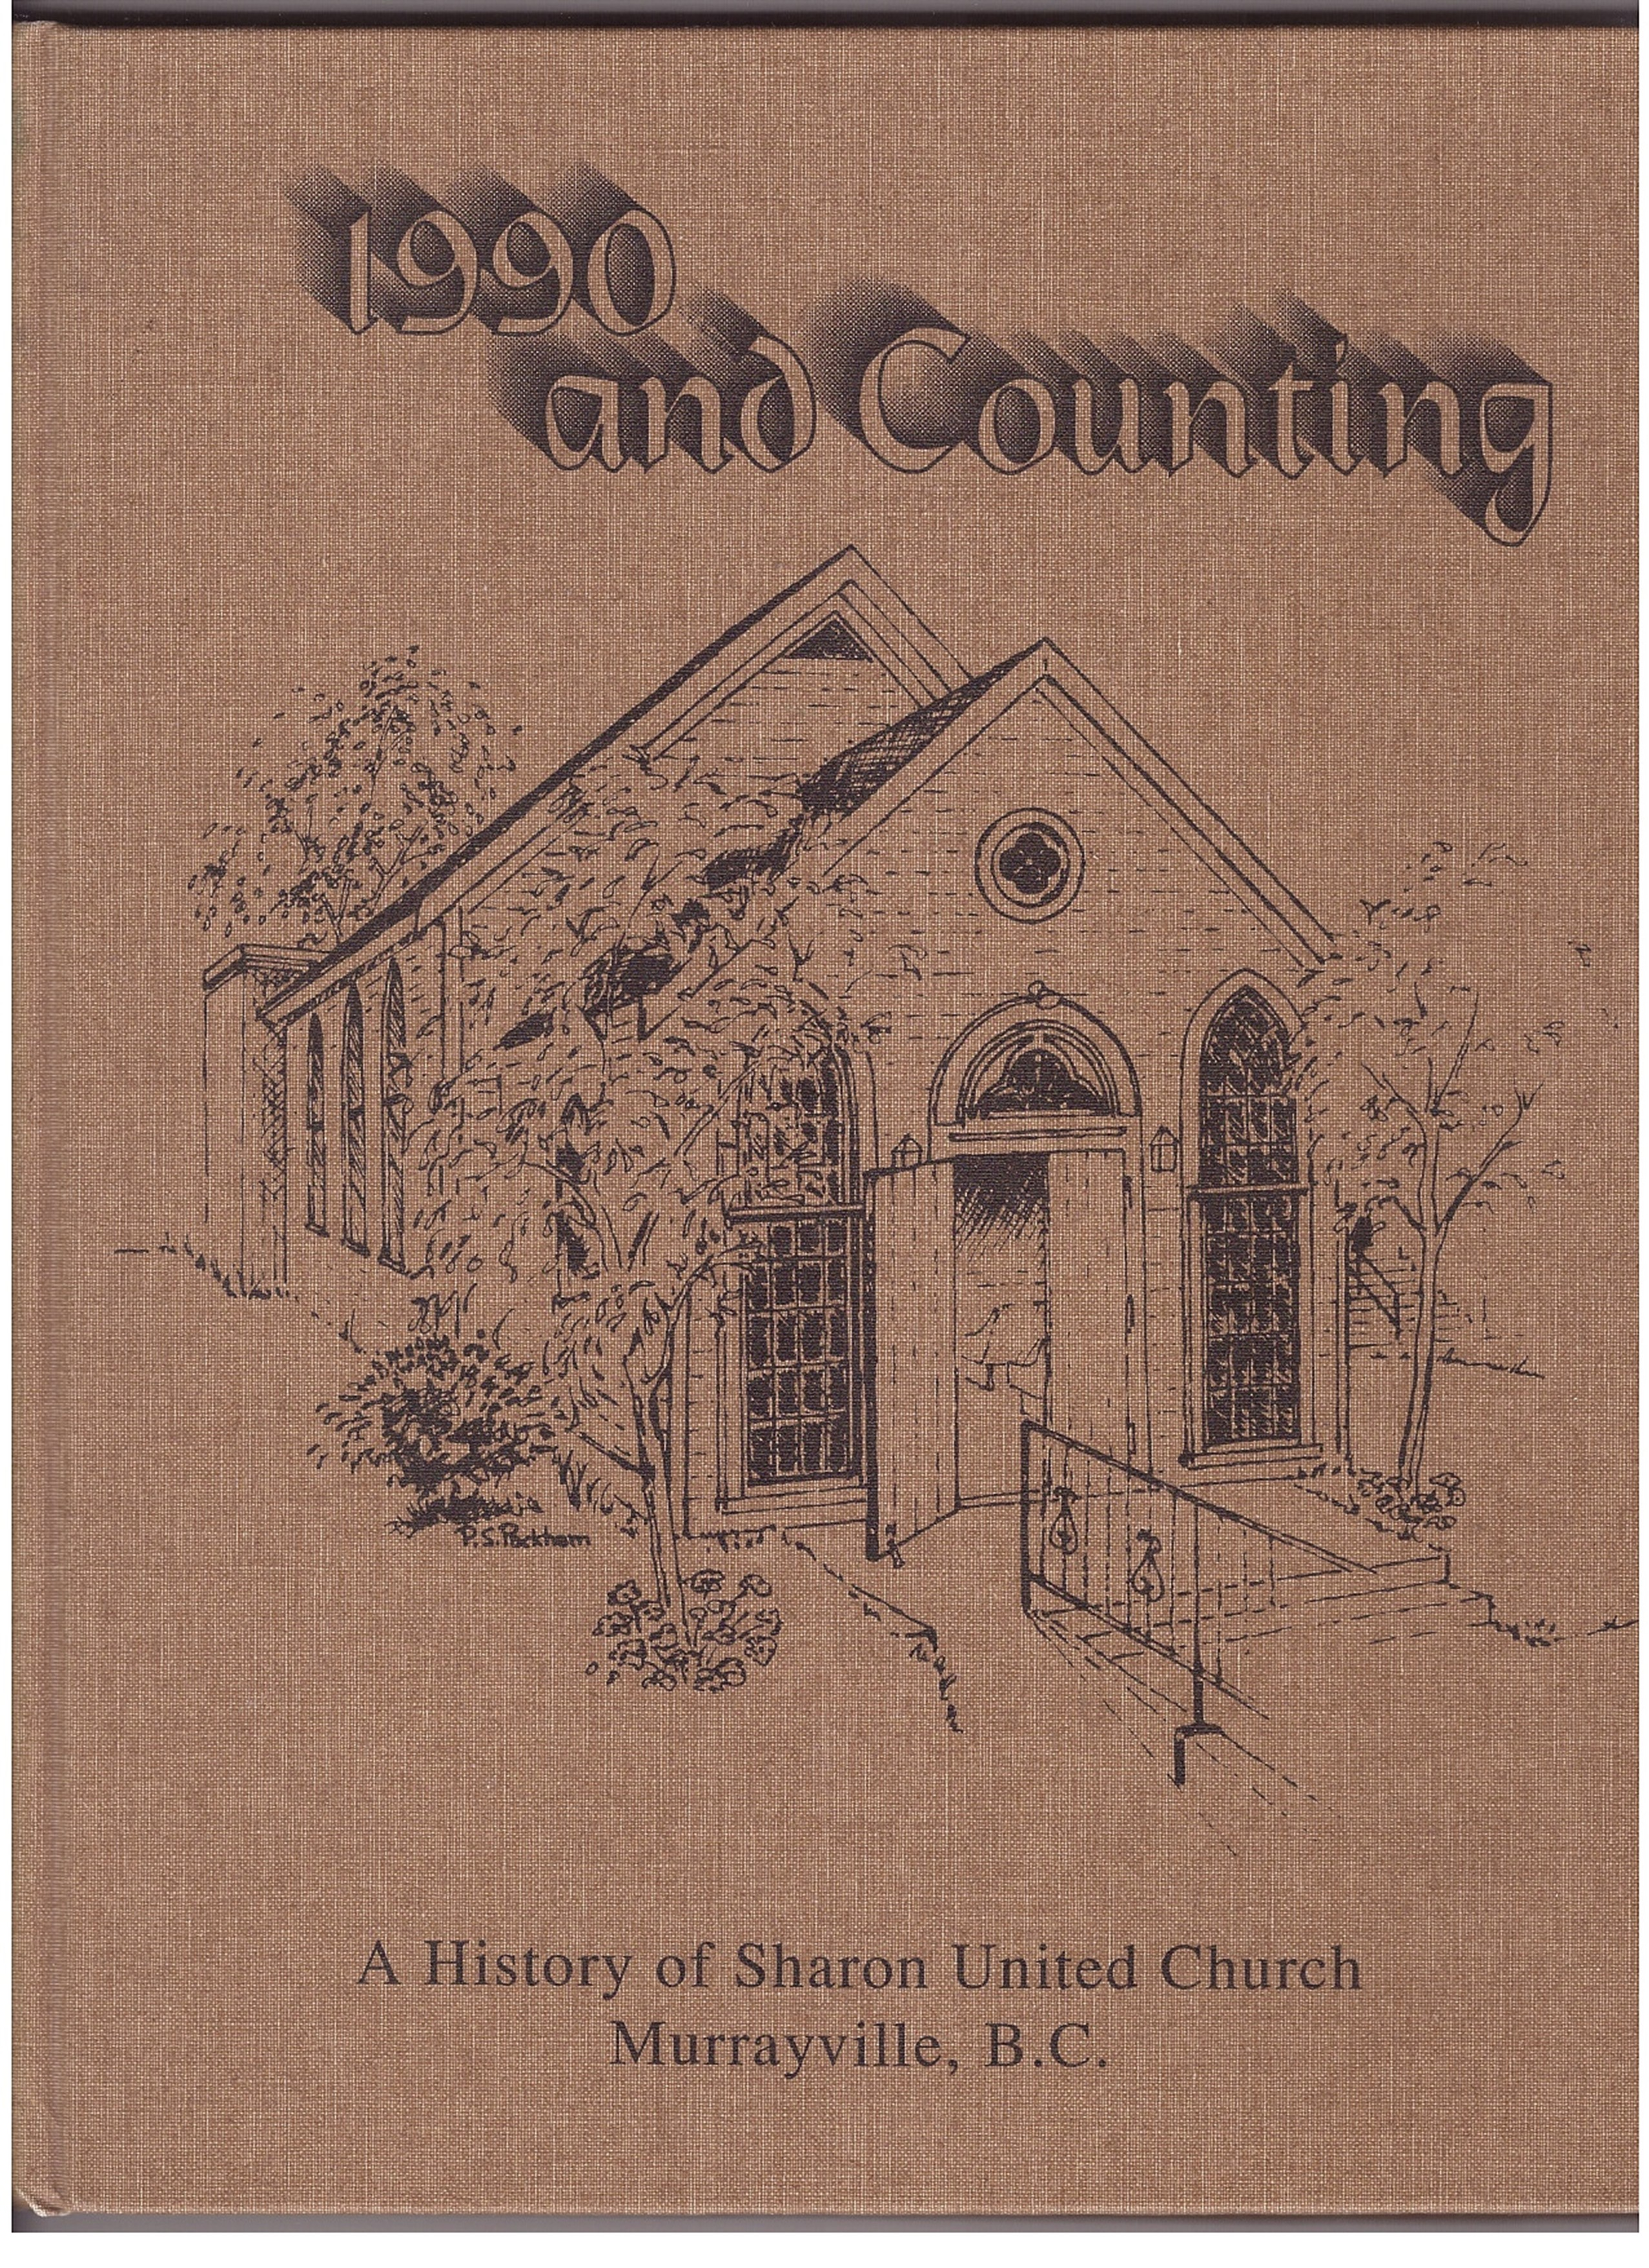 Image for 1990 and Counting, a History of Sharon United Church, Murrayville, B. C.